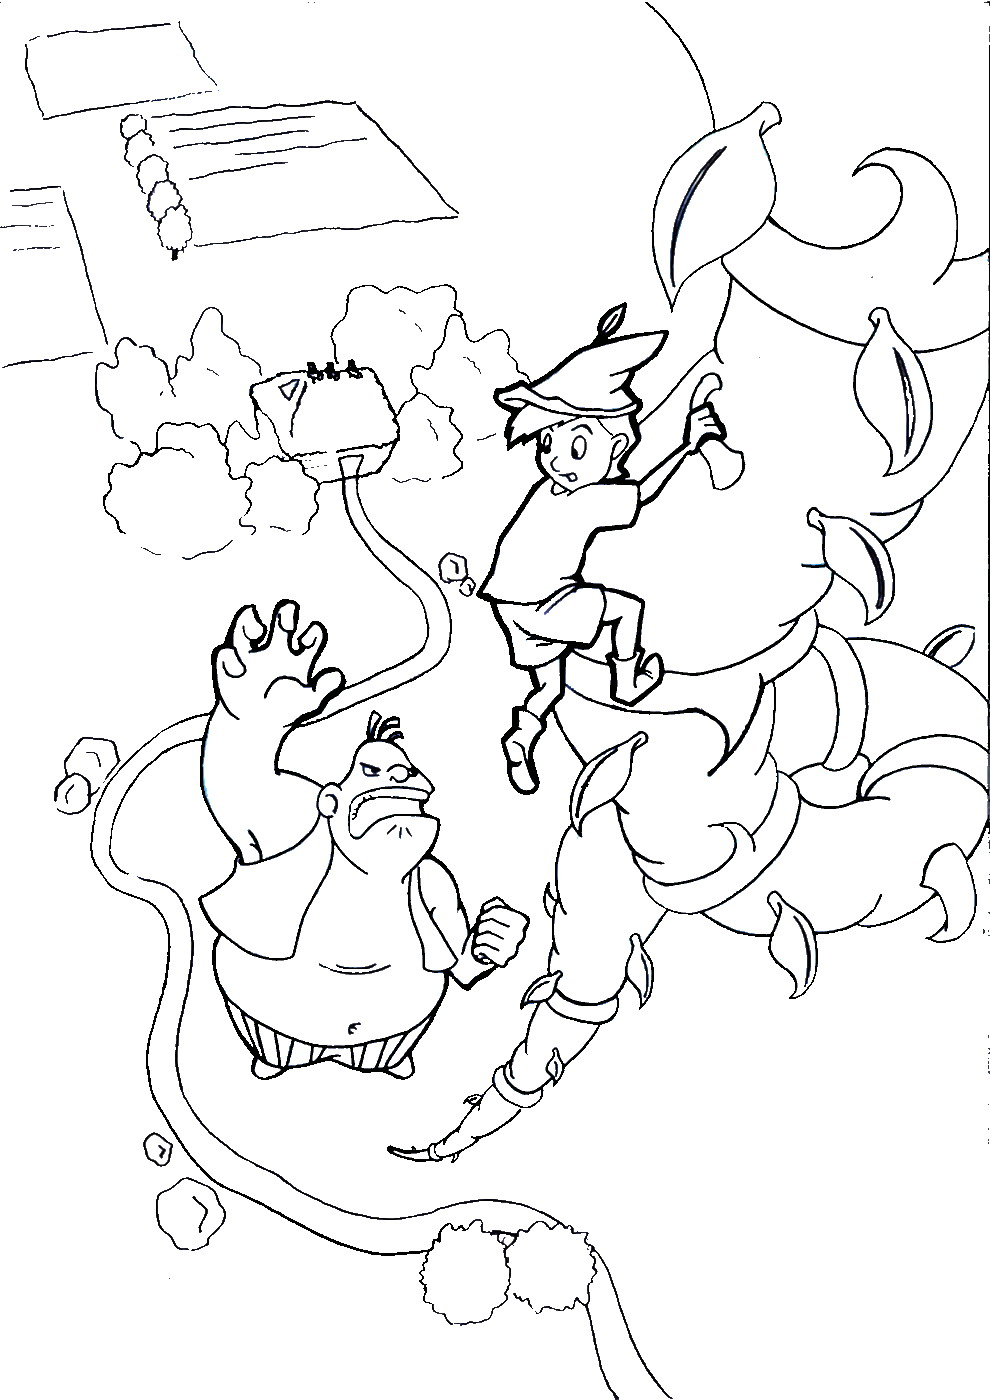 The best free Beanstalk coloring page images. Download